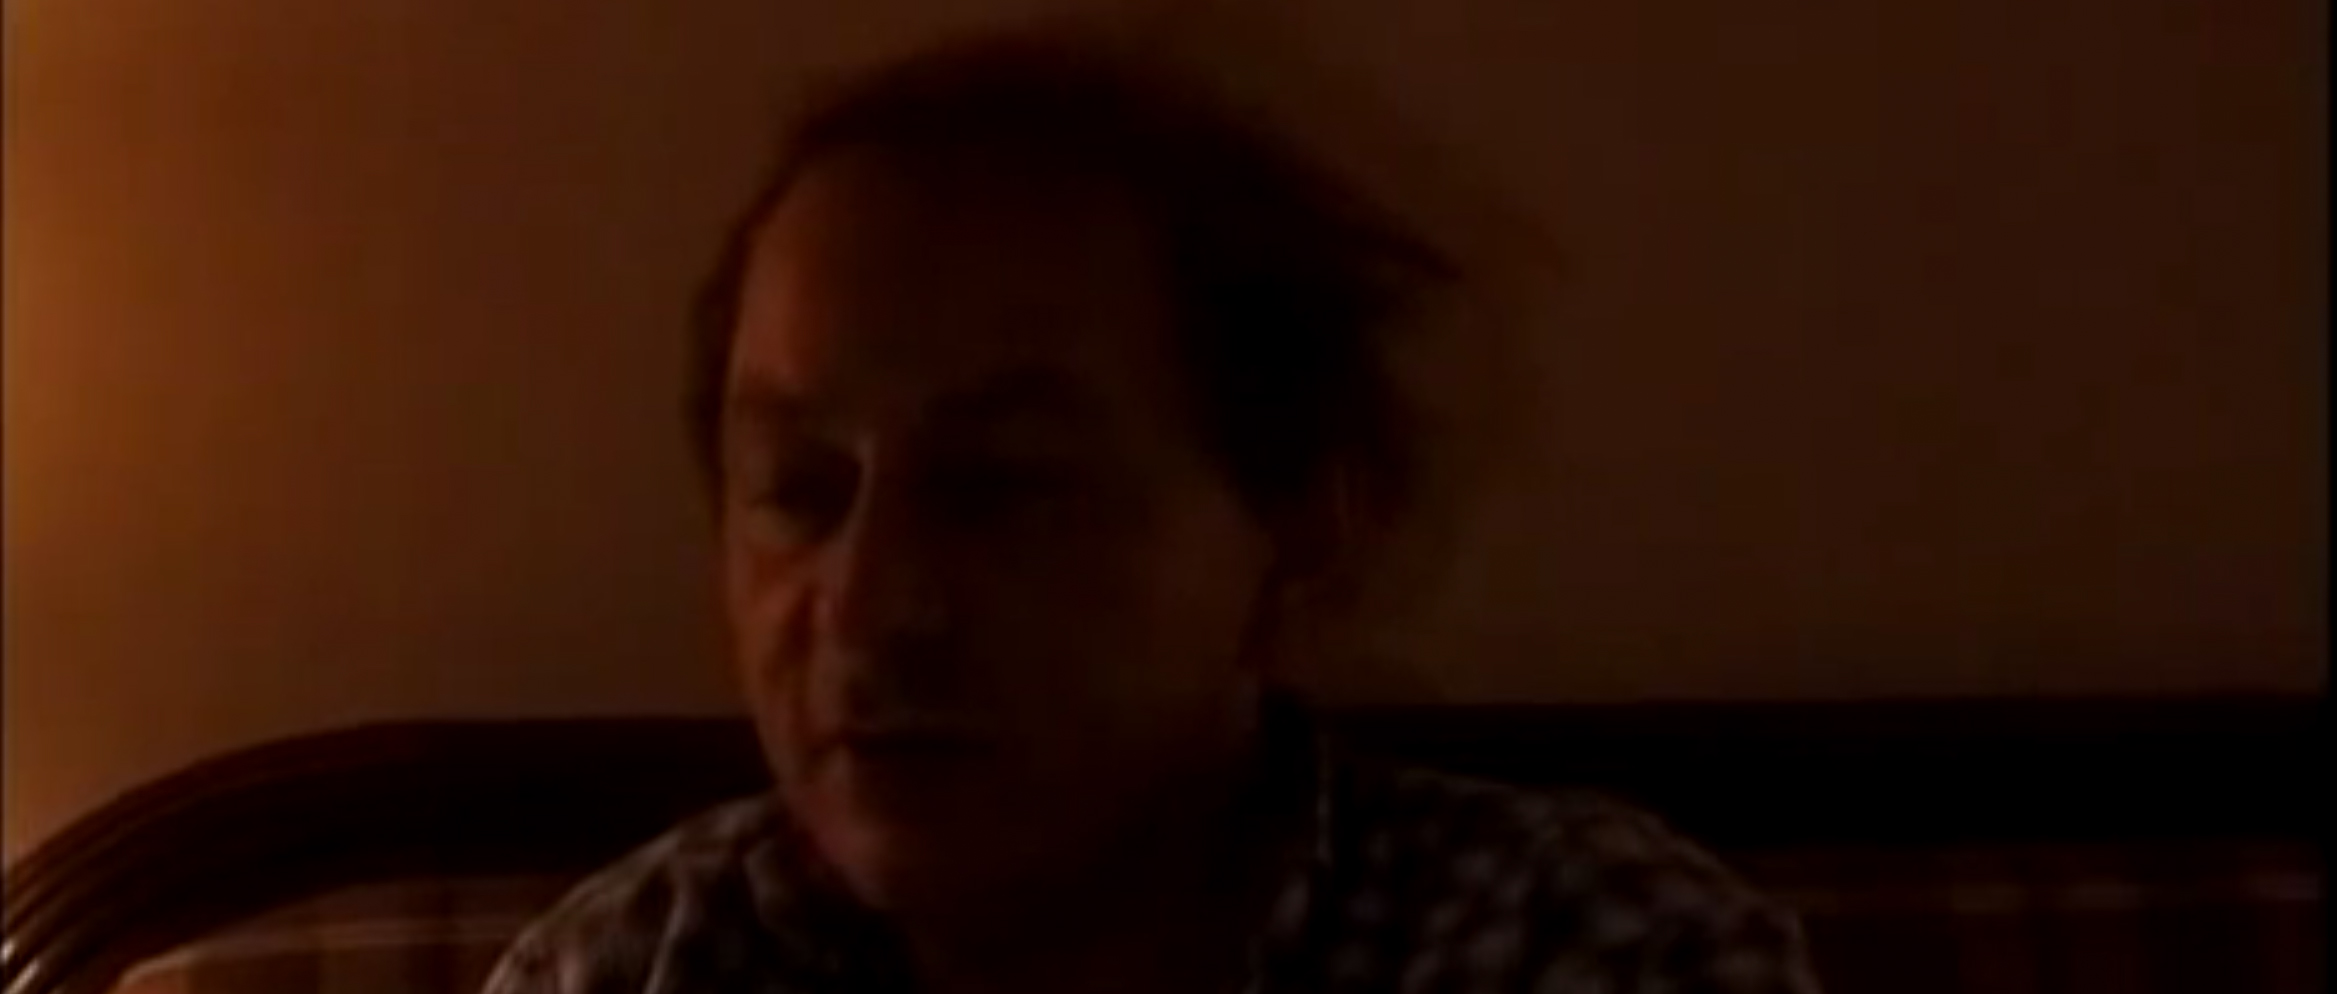 Still of Michel Houellebecq interview